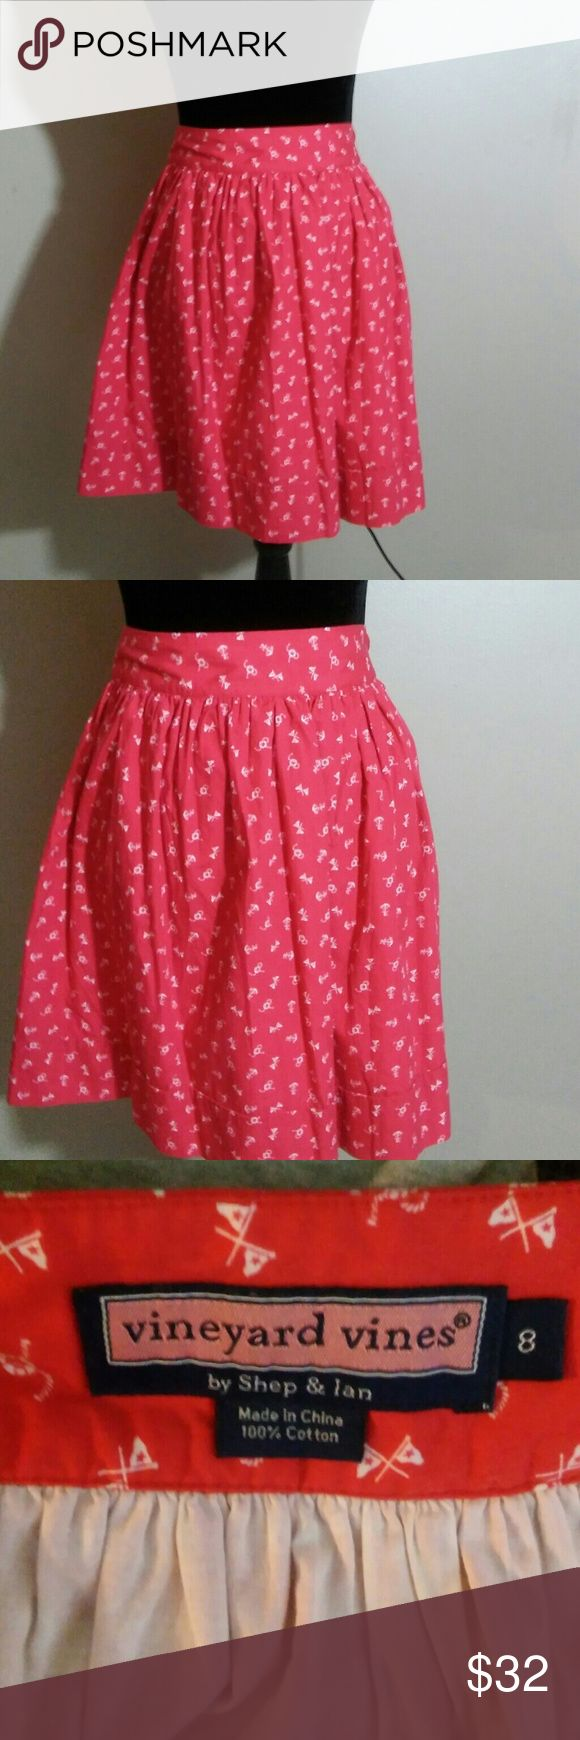 "Vineyard Vines Womens Sz 8 Nautical Skirt EUC Like-new condition, made in China, 100% cotton, 32"" waist and 19"" in length, Red color Vineyard Vines Skirts Circle & Skater"